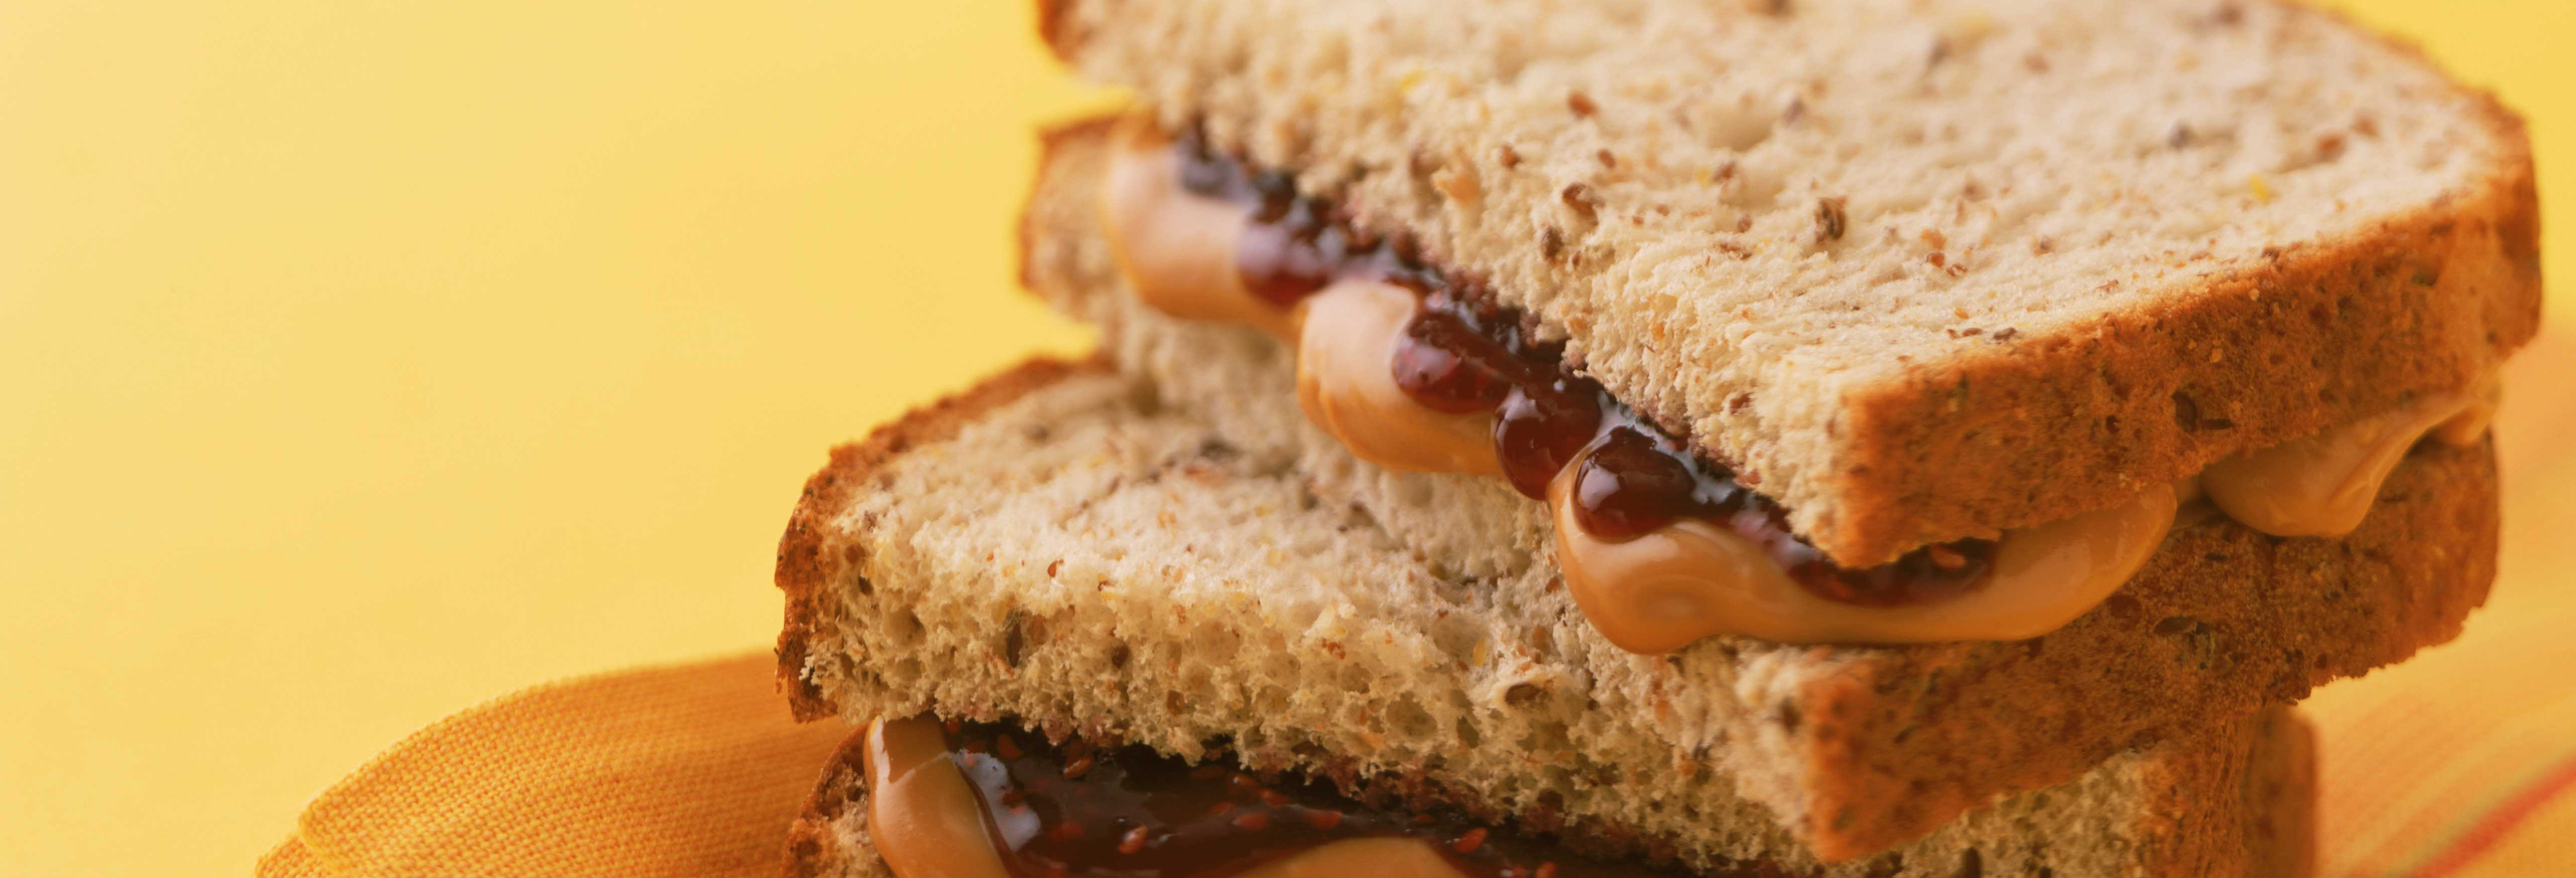 Is Peanut Butter Good for You? - Consumer Reports